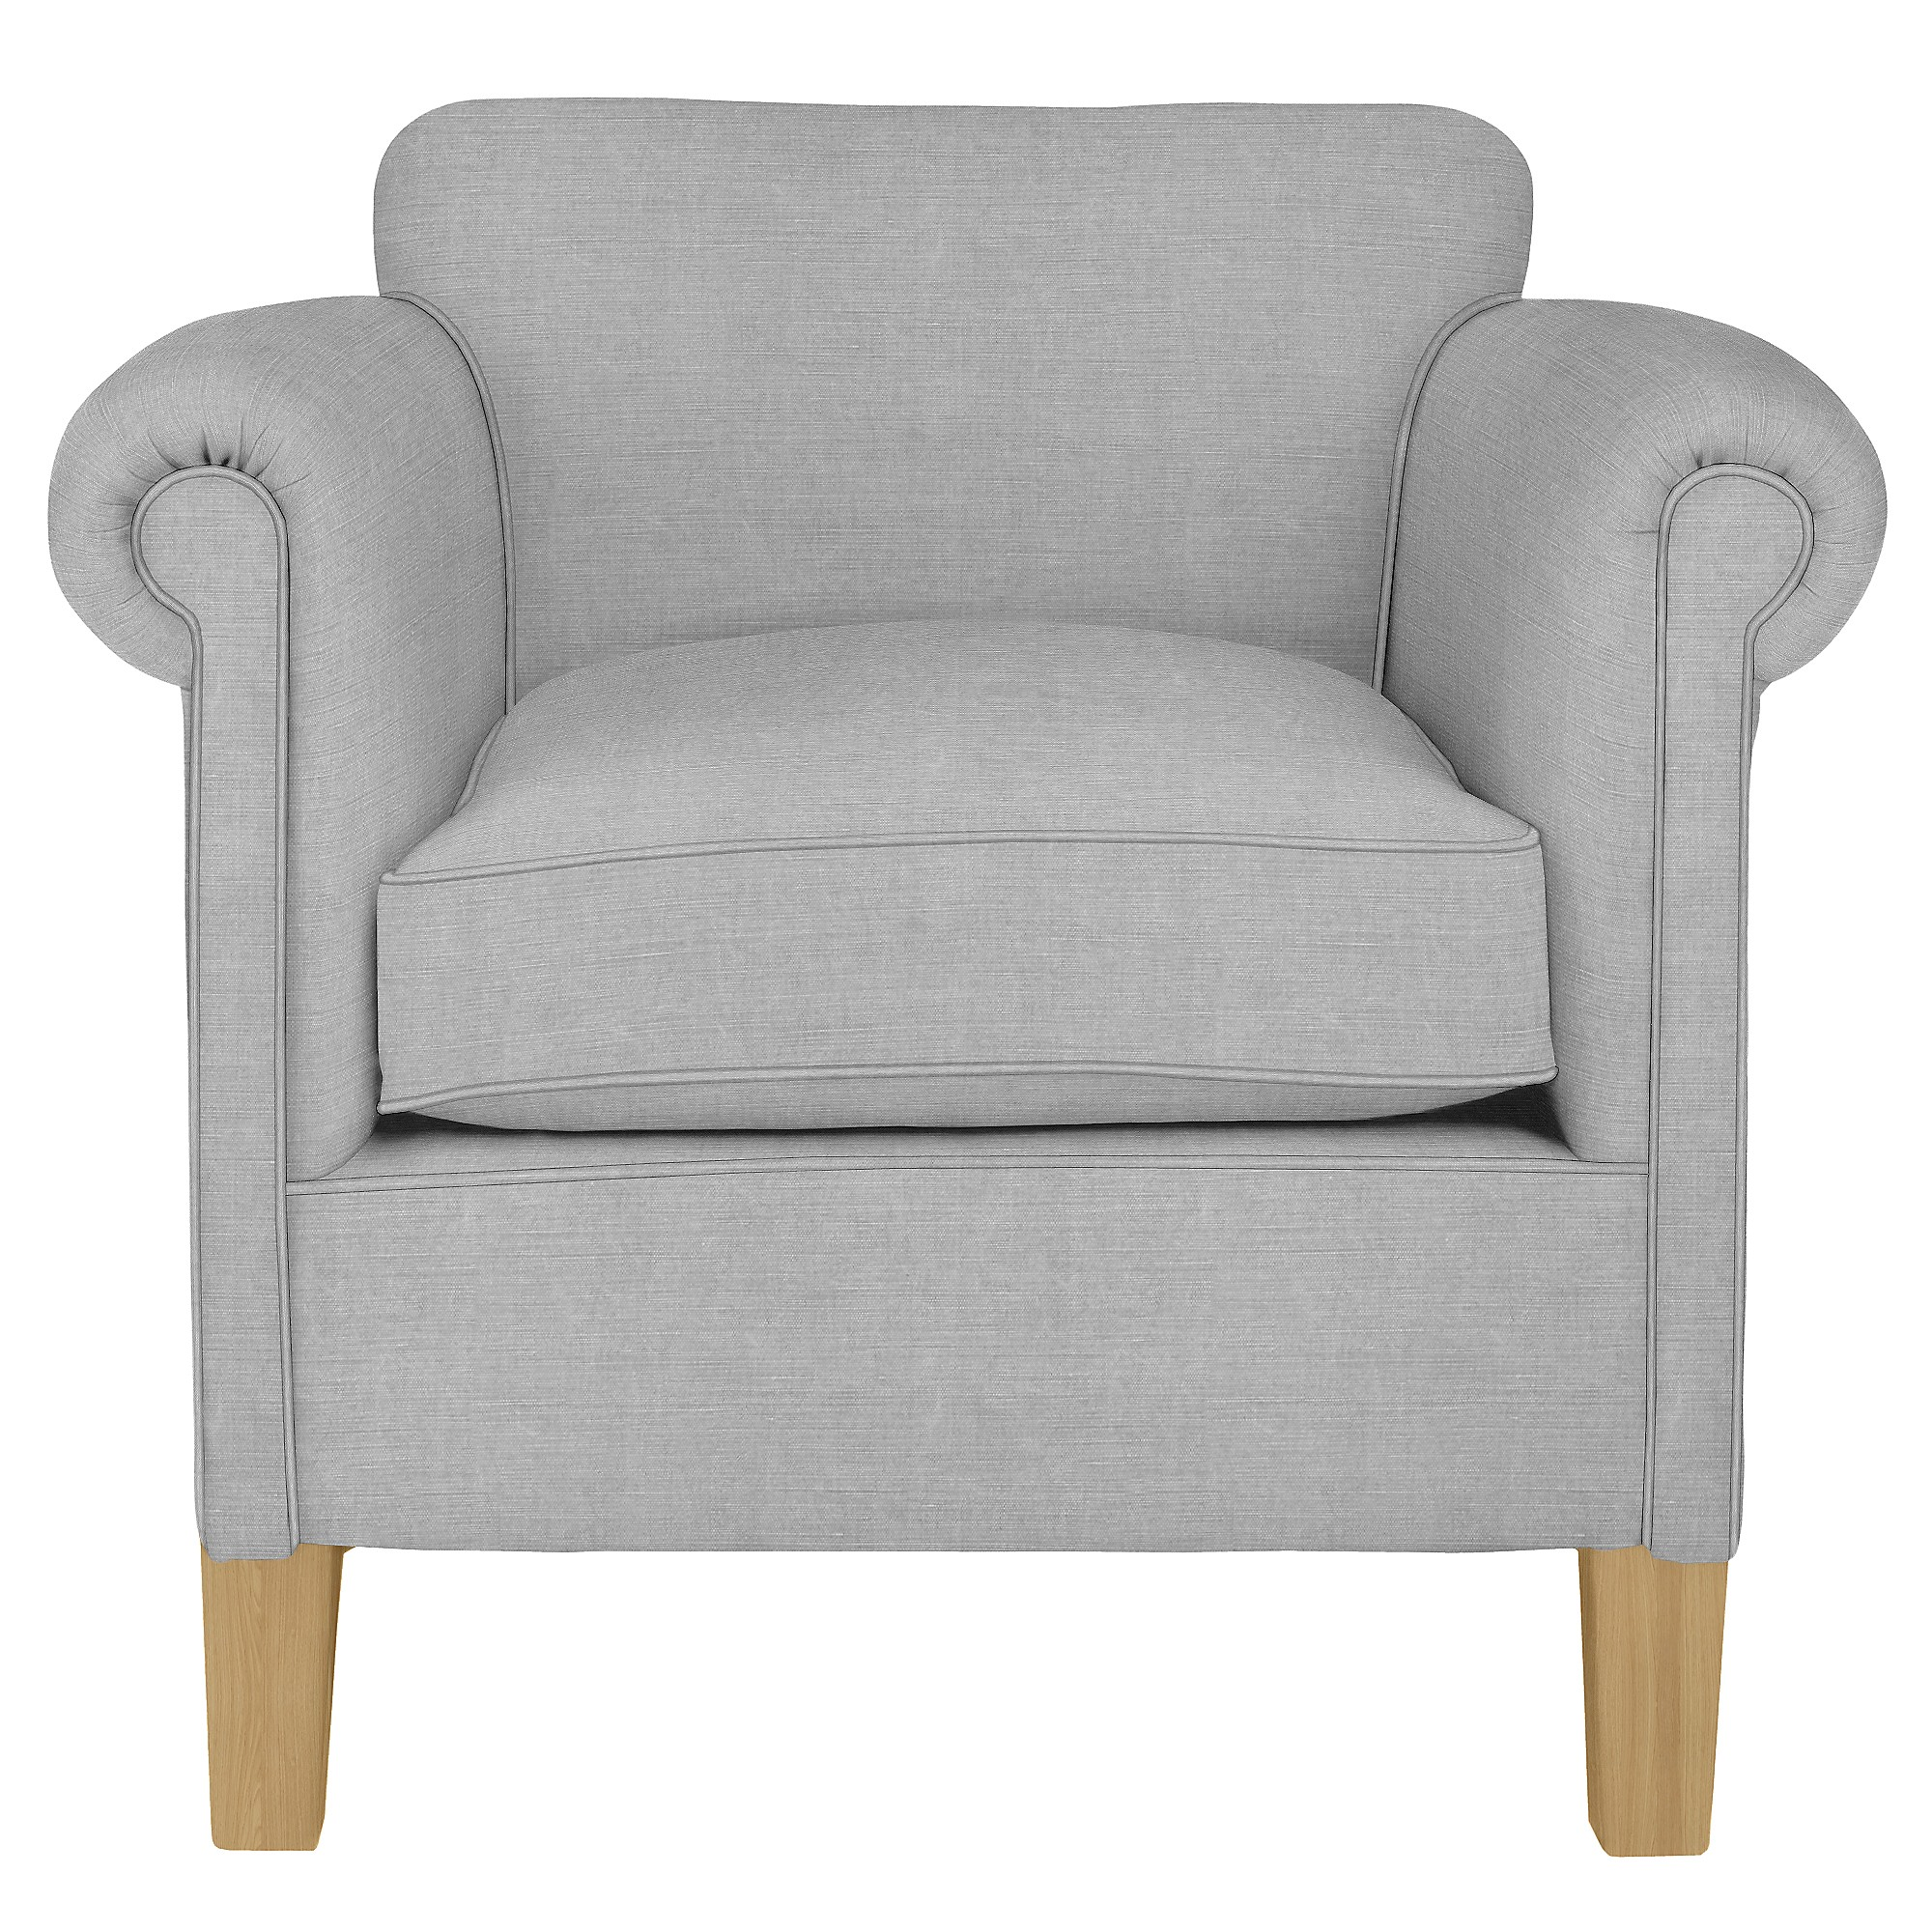 John lewis camford armchair review best buy review for John lewis home design service reviews